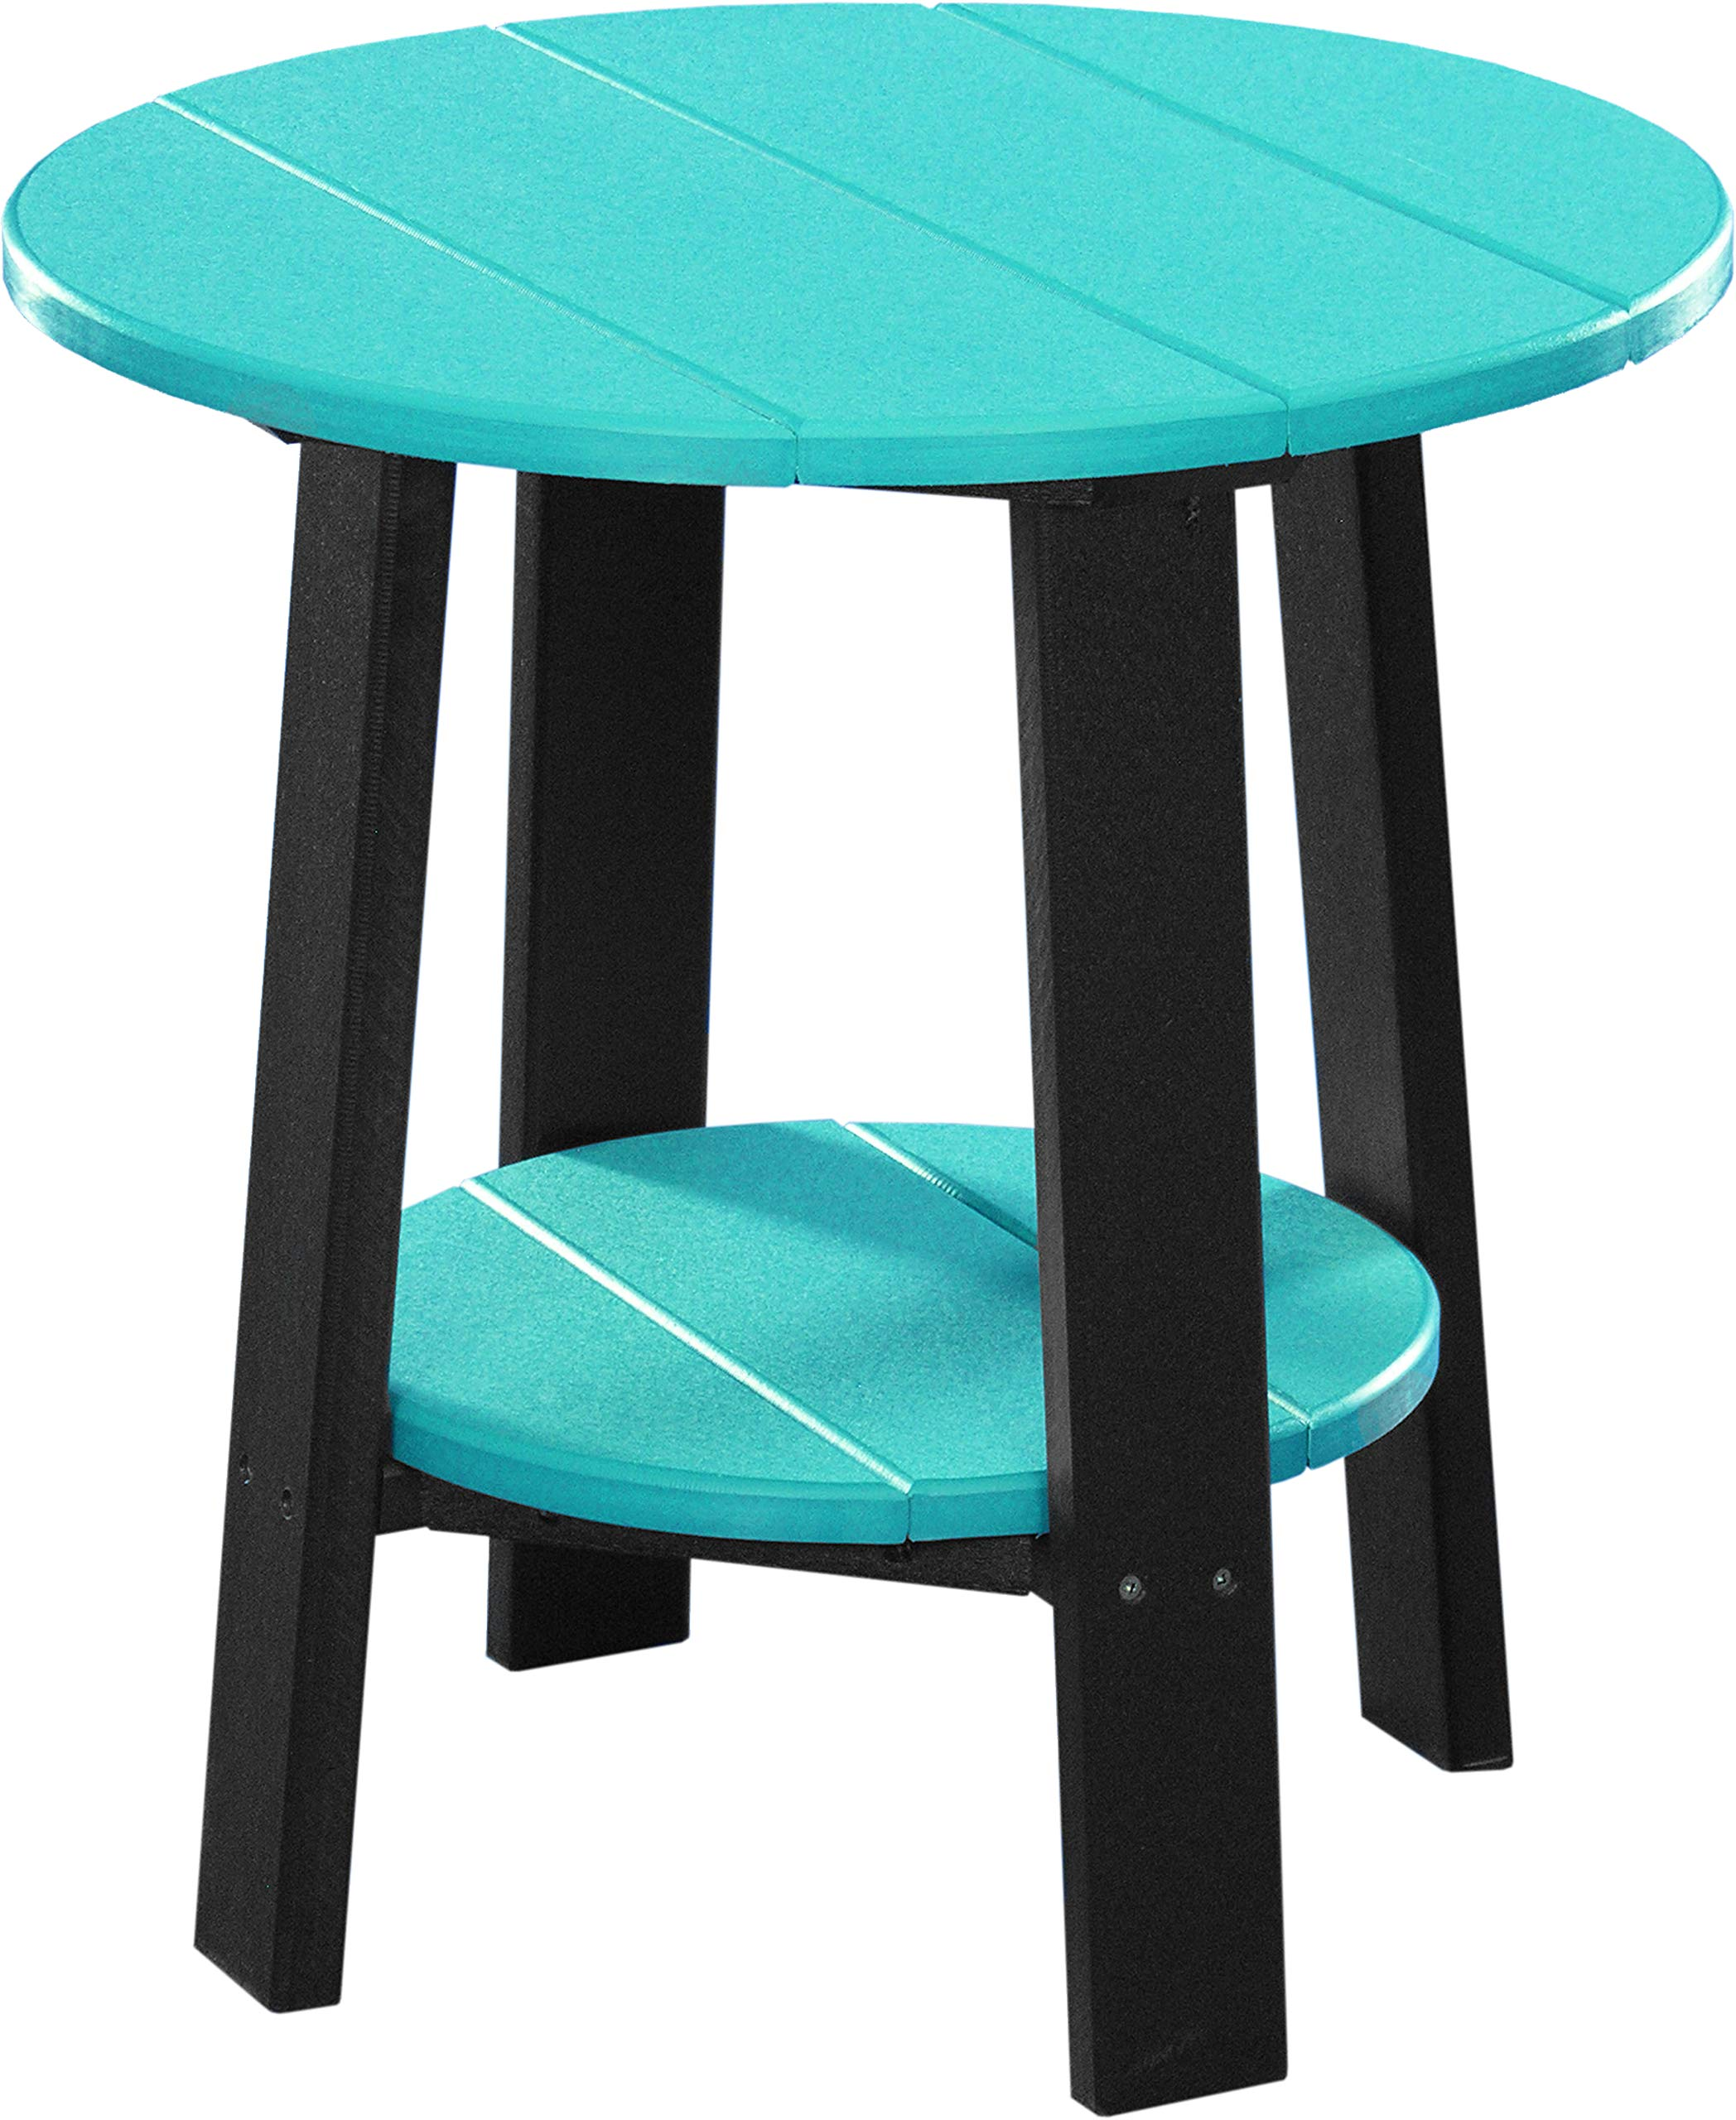 Deluxe End Table - Poly - Aruba Blue & Black